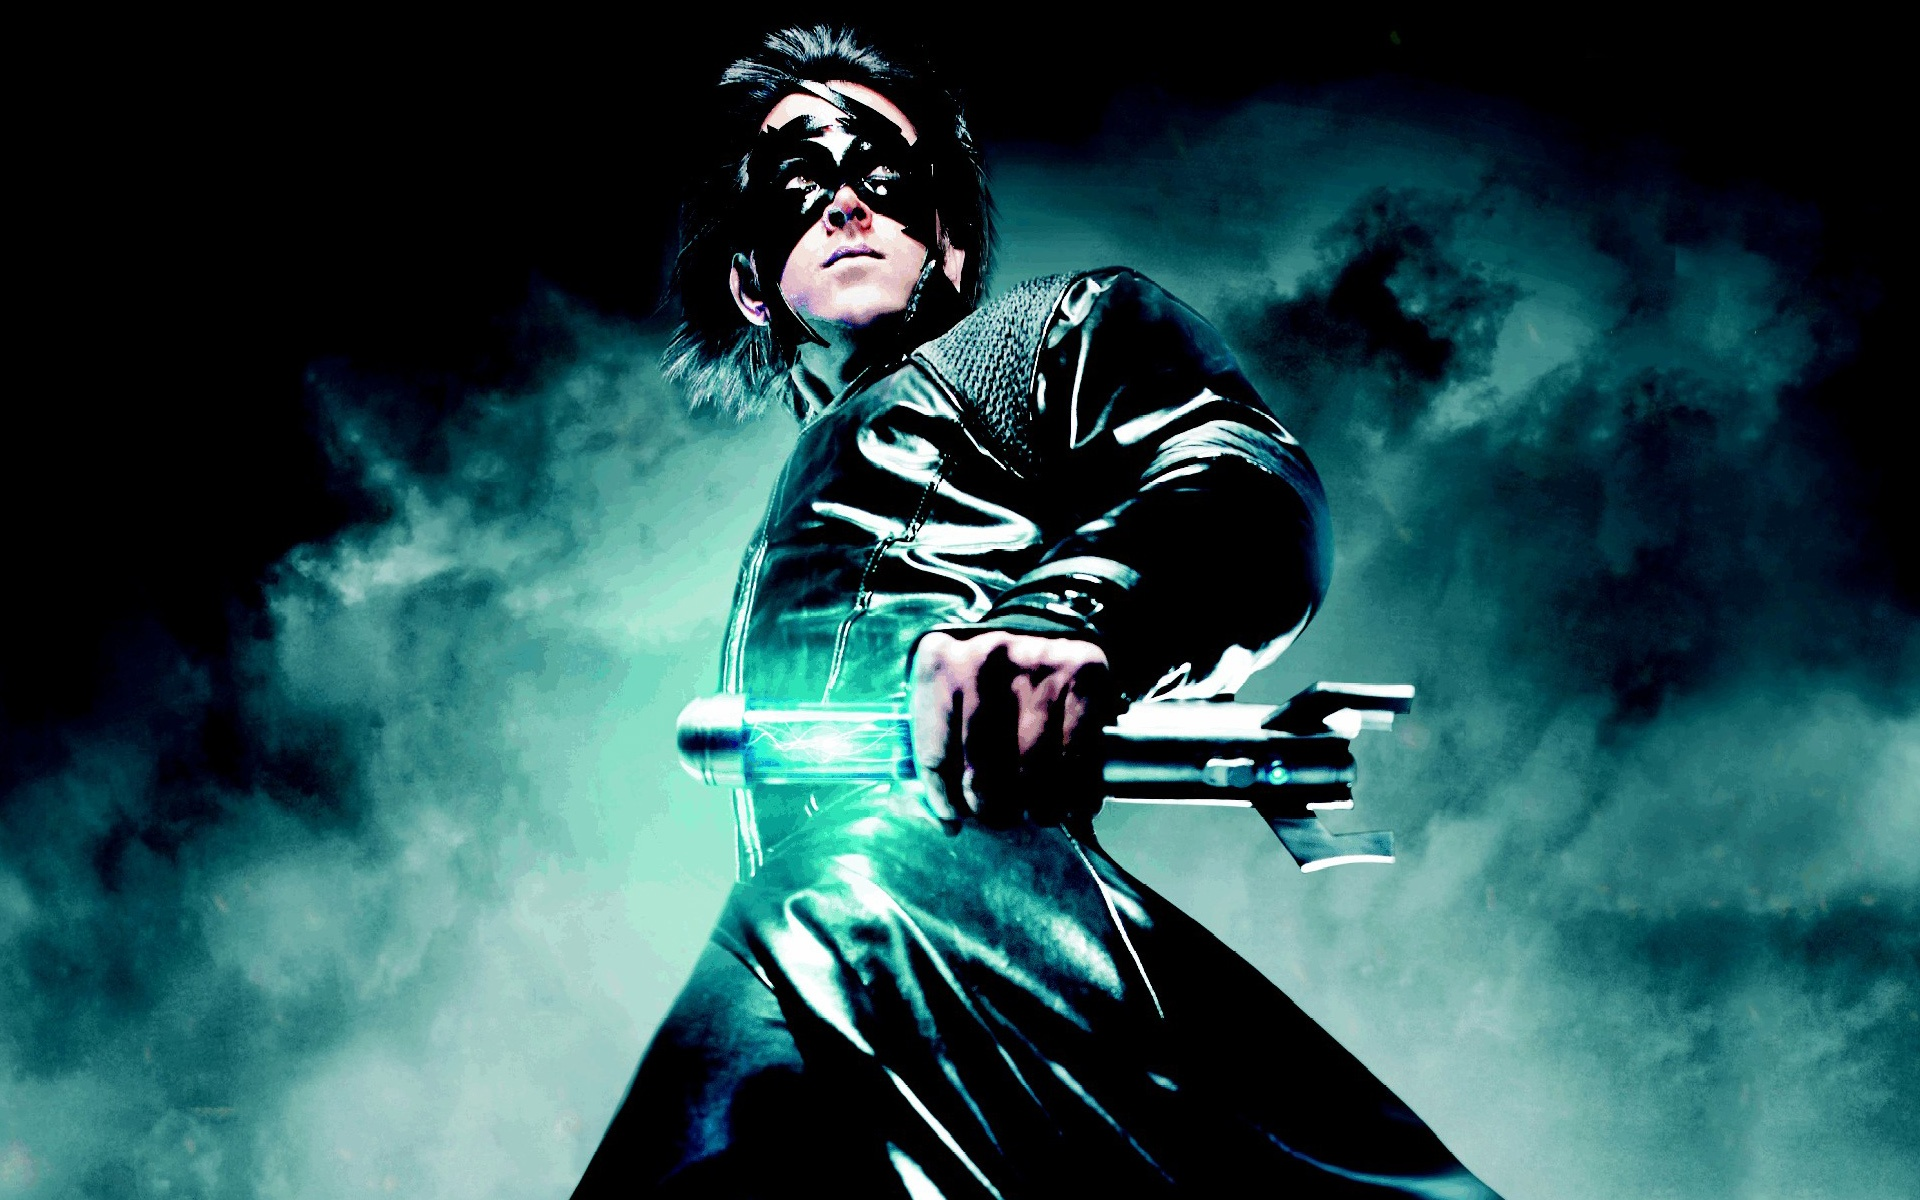 Krrish 3 Movie Wallpapers HD Wallpapers 1920x1200